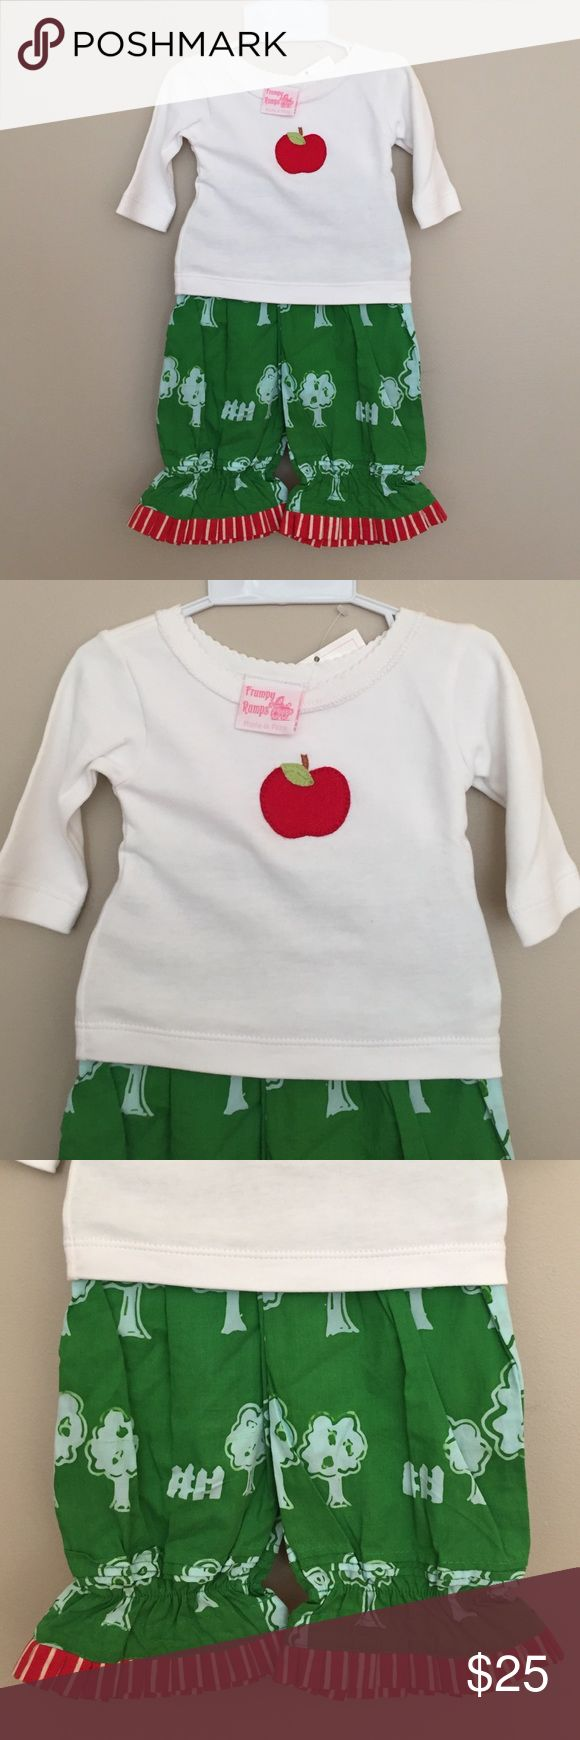 Frumpy Rumps Outfit Perfect for back to school or apple picking season. Apple appliqué top and green ruffle ankle bottoms. Frumpy Rumps Matching Sets